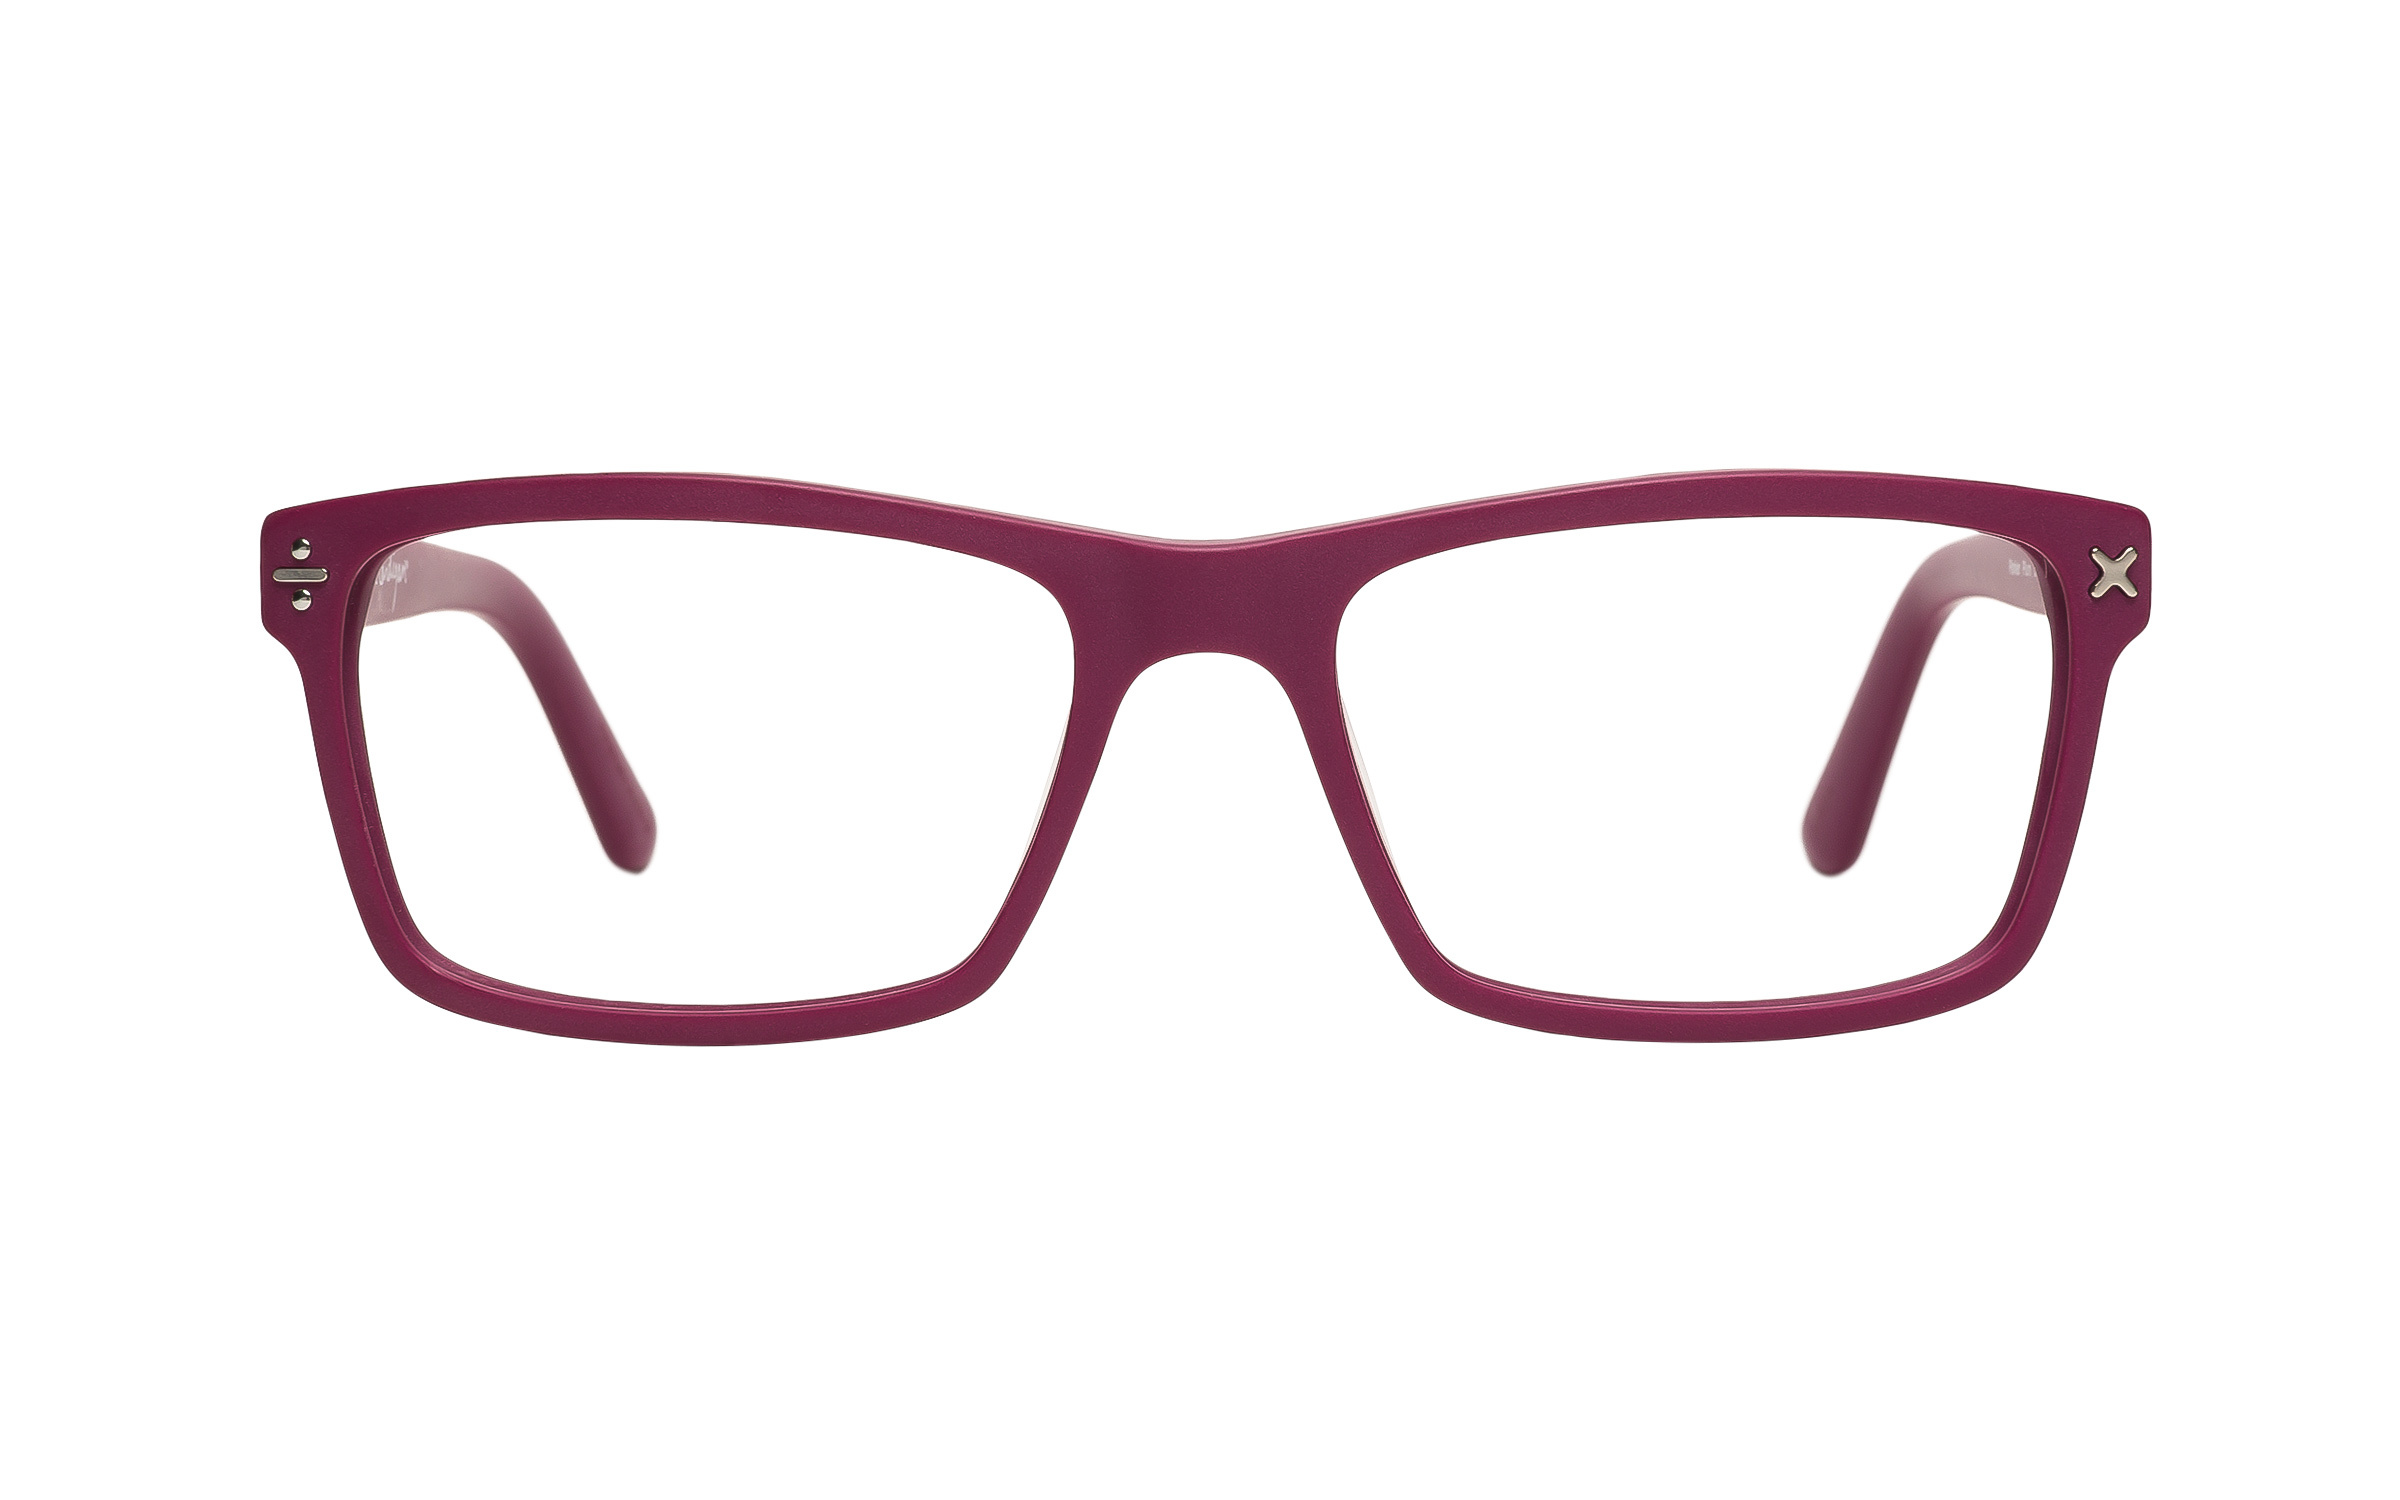 Perry Ellis glasses - buy online with free shipping & returns | Coastal